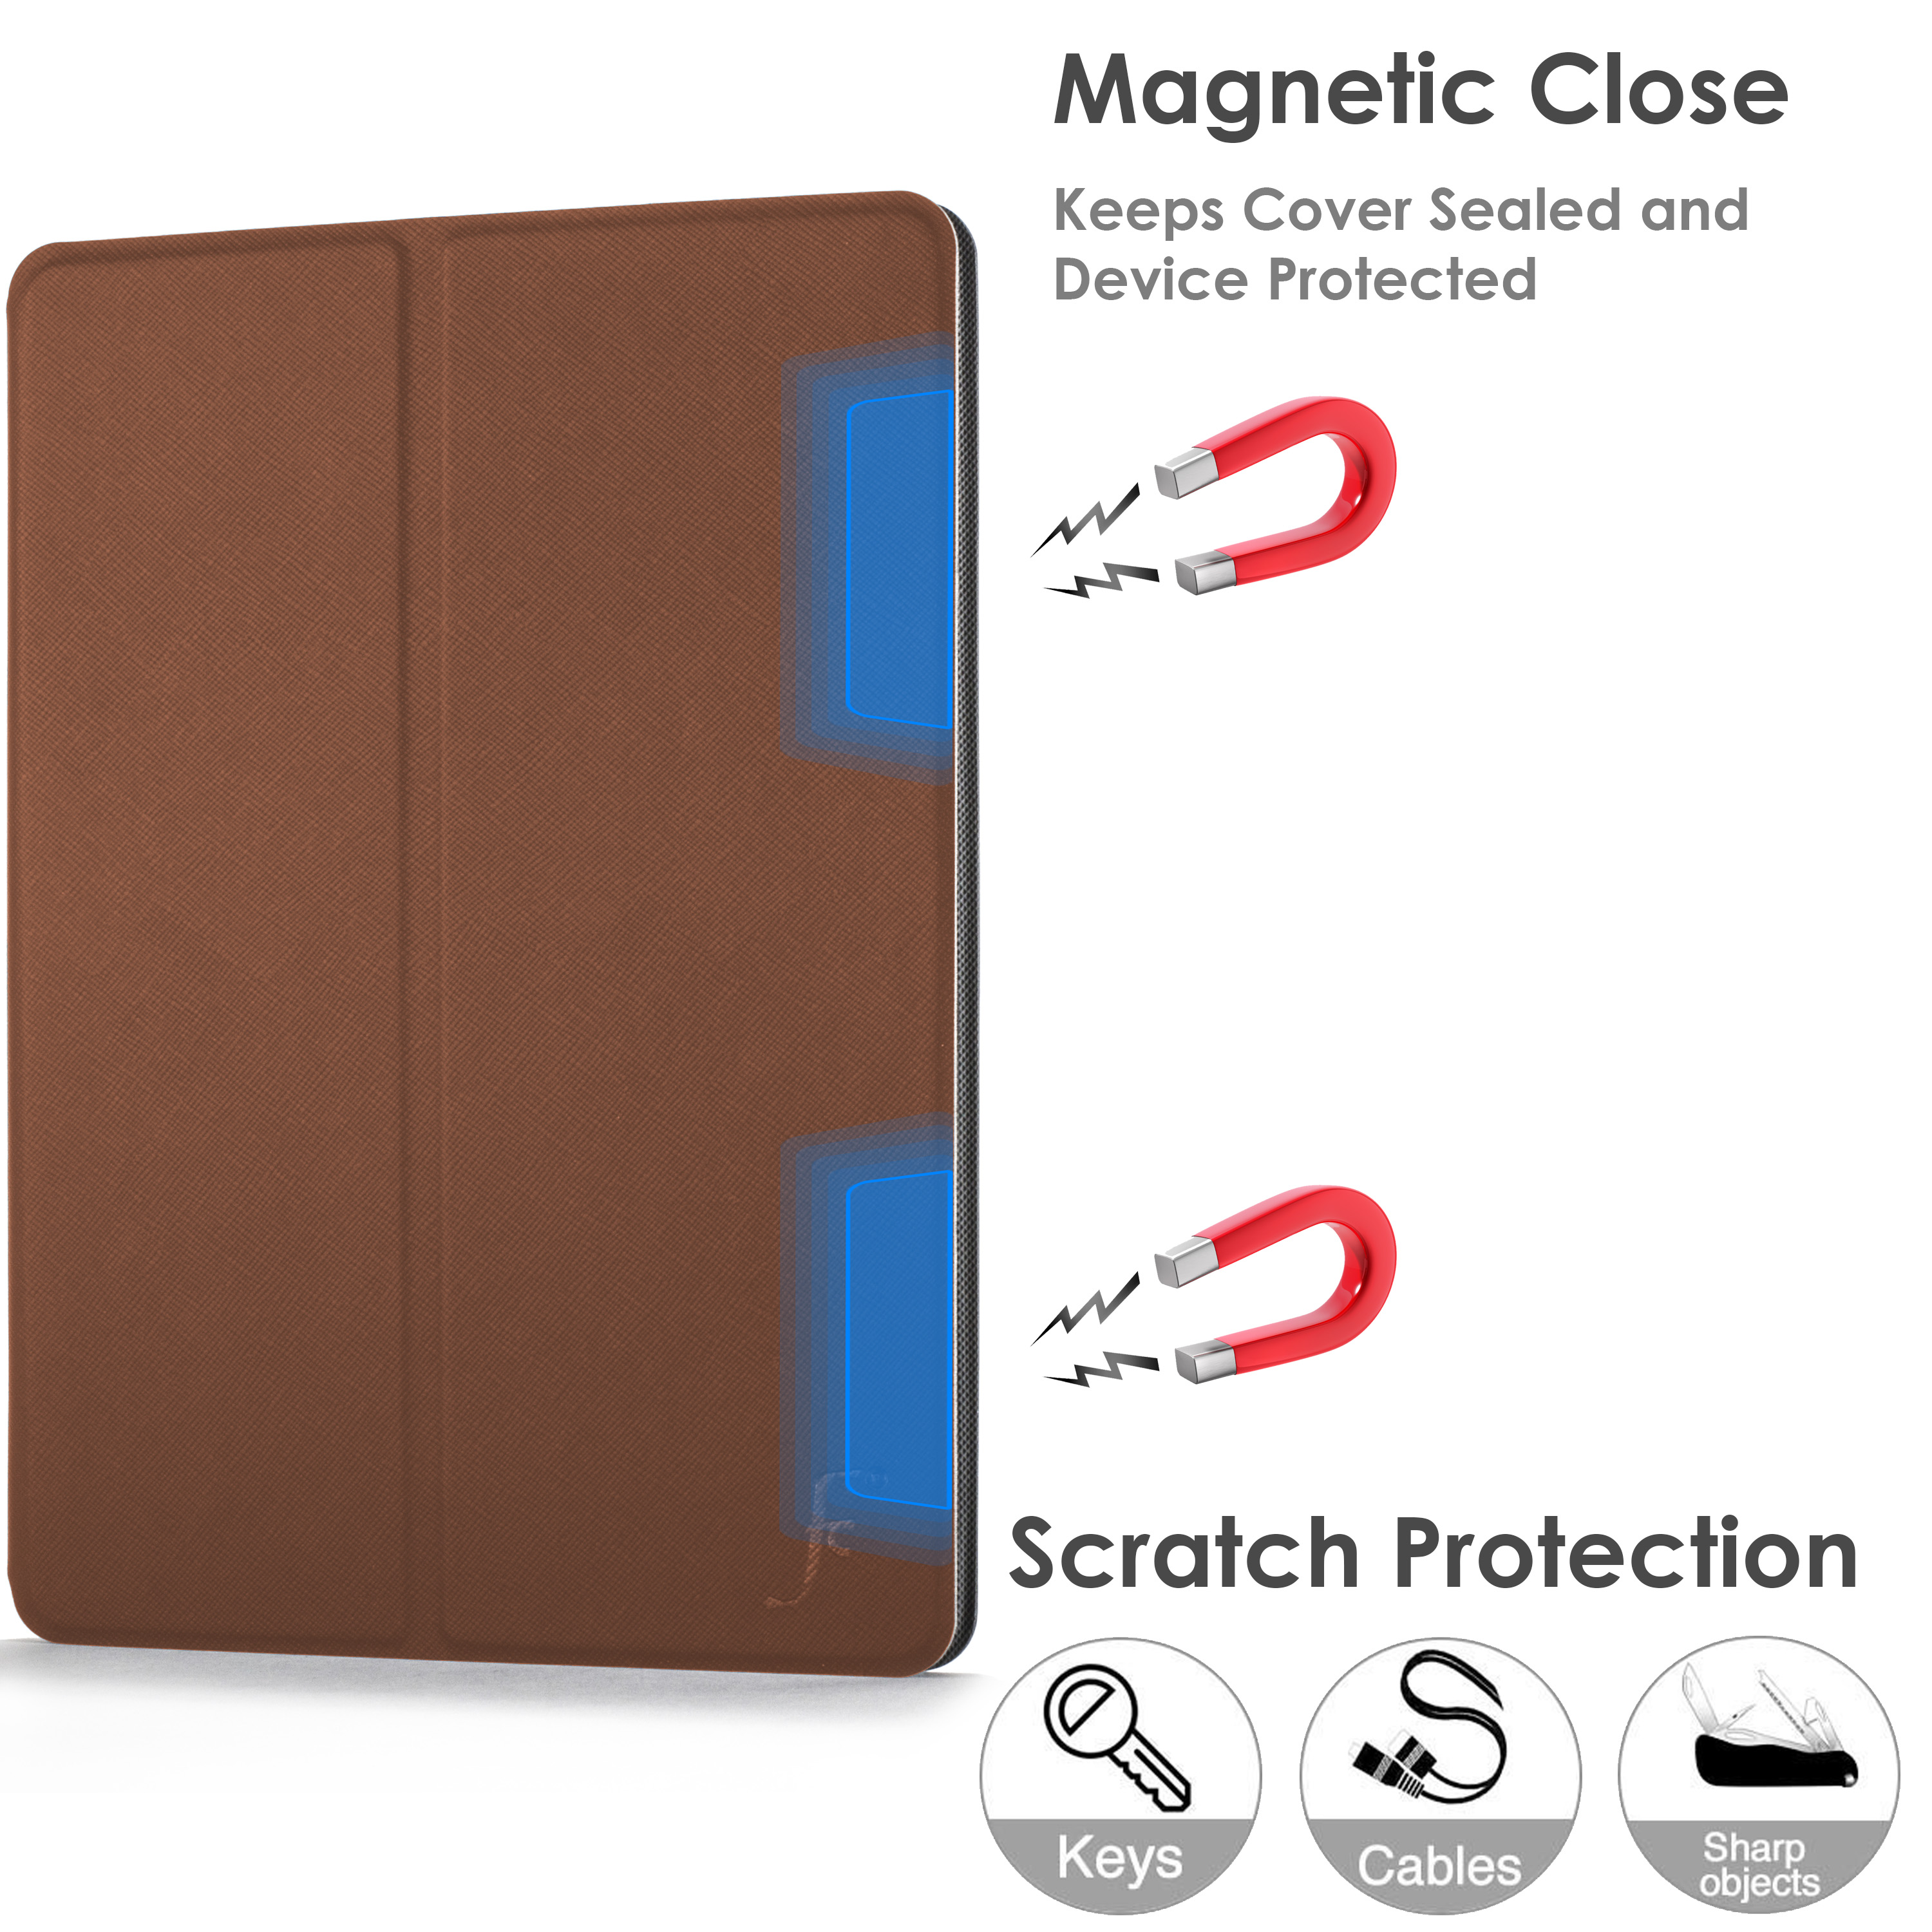 miniature 15 - Samsung Galaxy Tab A 10.1 2019 Étui Magnétique Protection & Support + Stylet